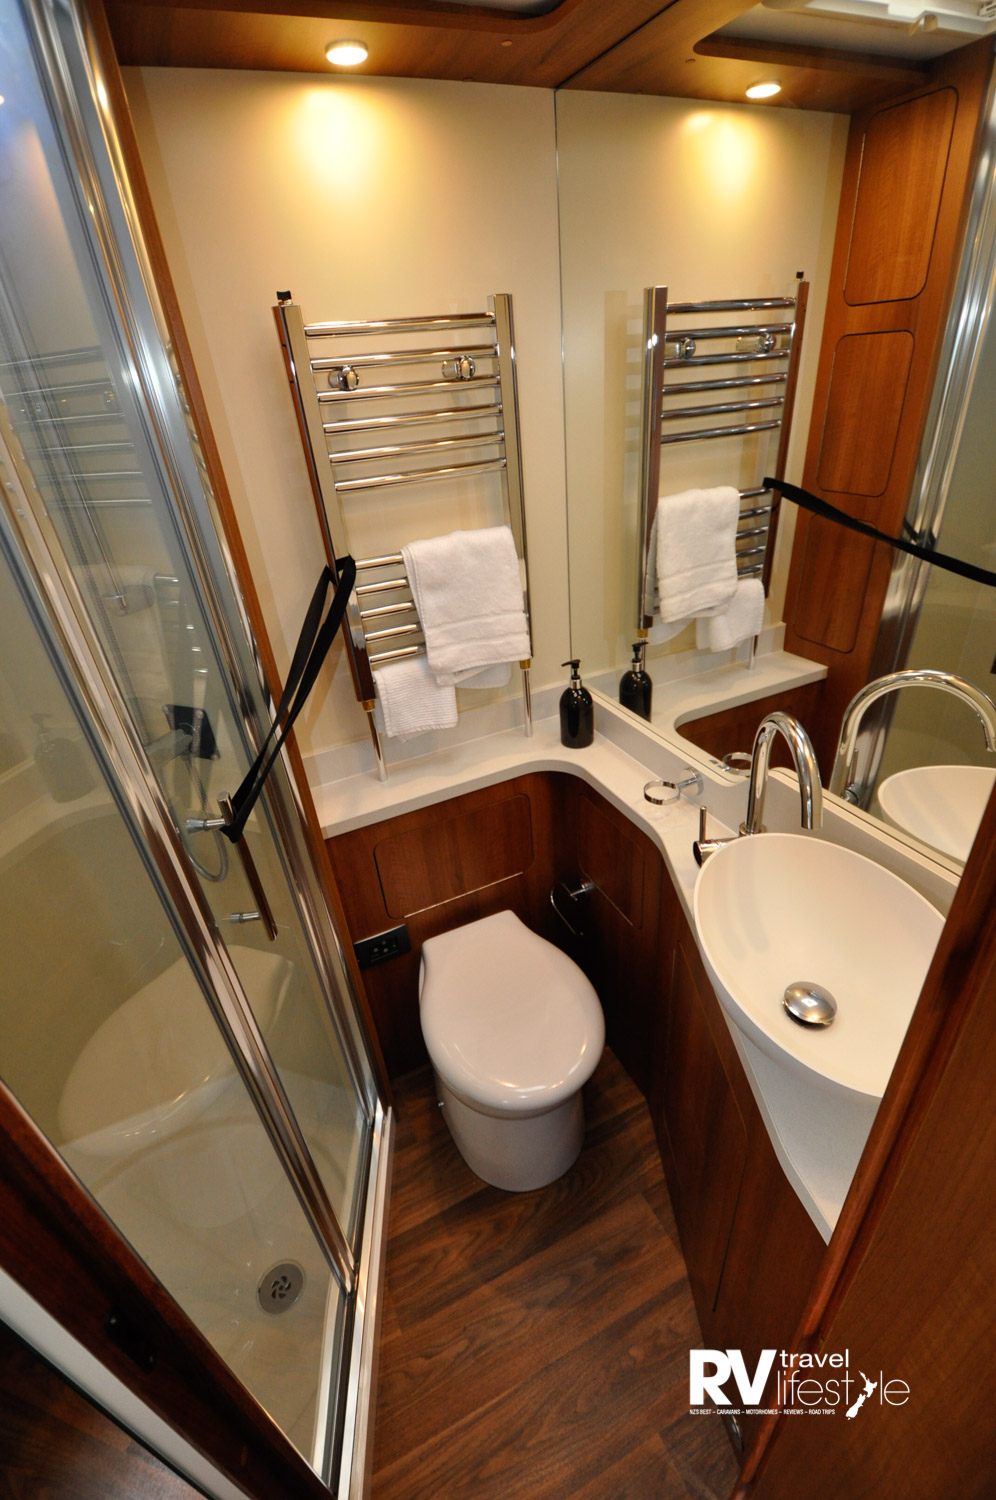 The bathroom and kitchen both have nonslip waterproof flooring. The internal height is 2200mm, giving a feeling of spaciousness you don't often get in an RV and the slide-out adds 2.7m2 extra floor space